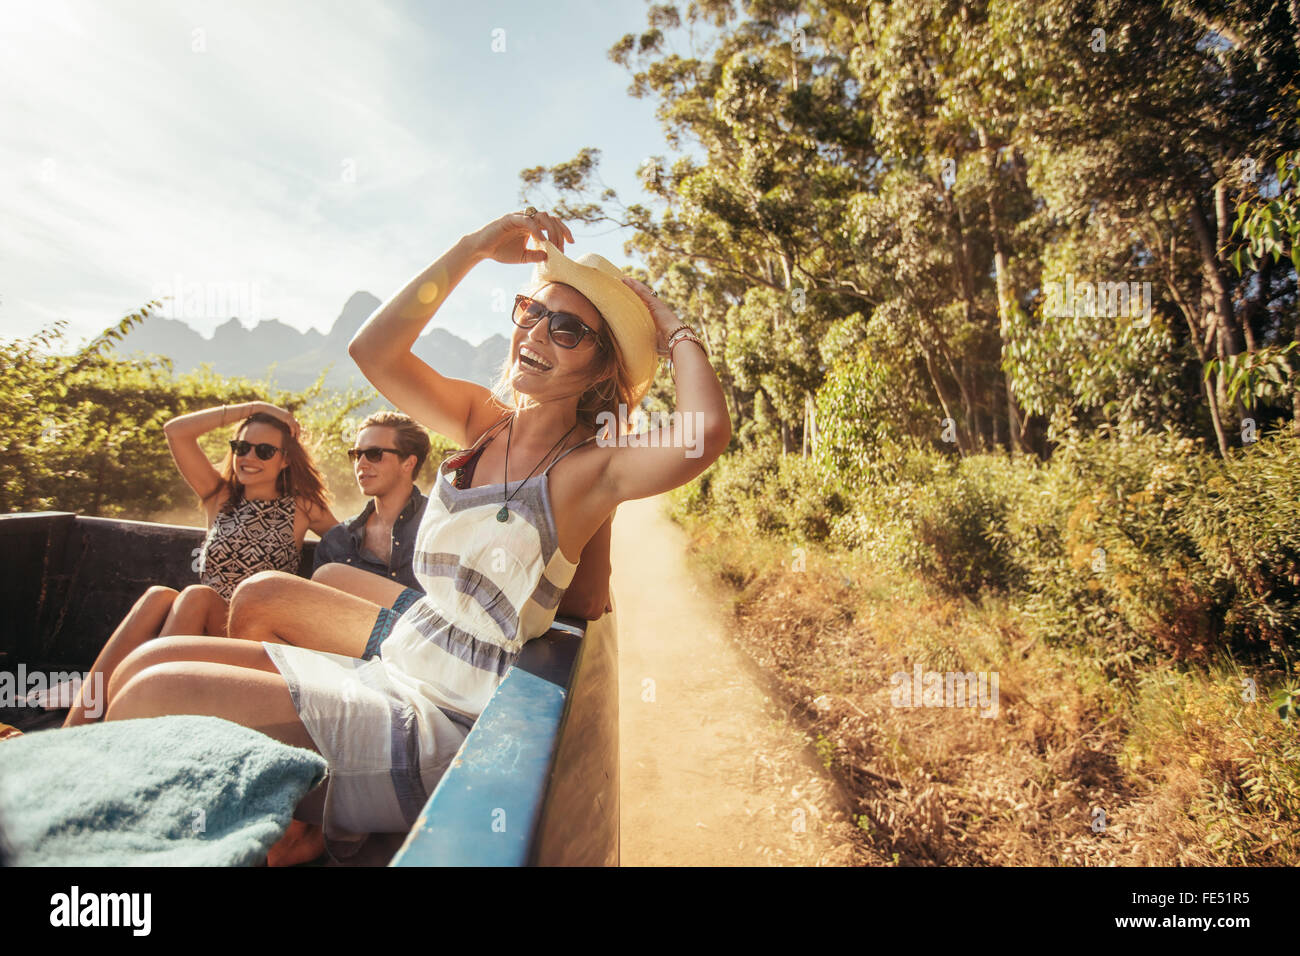 Portrait of a cheerful young woman sitting in the back of pickup truck with friends. Young people enjoying on a - Stock Image